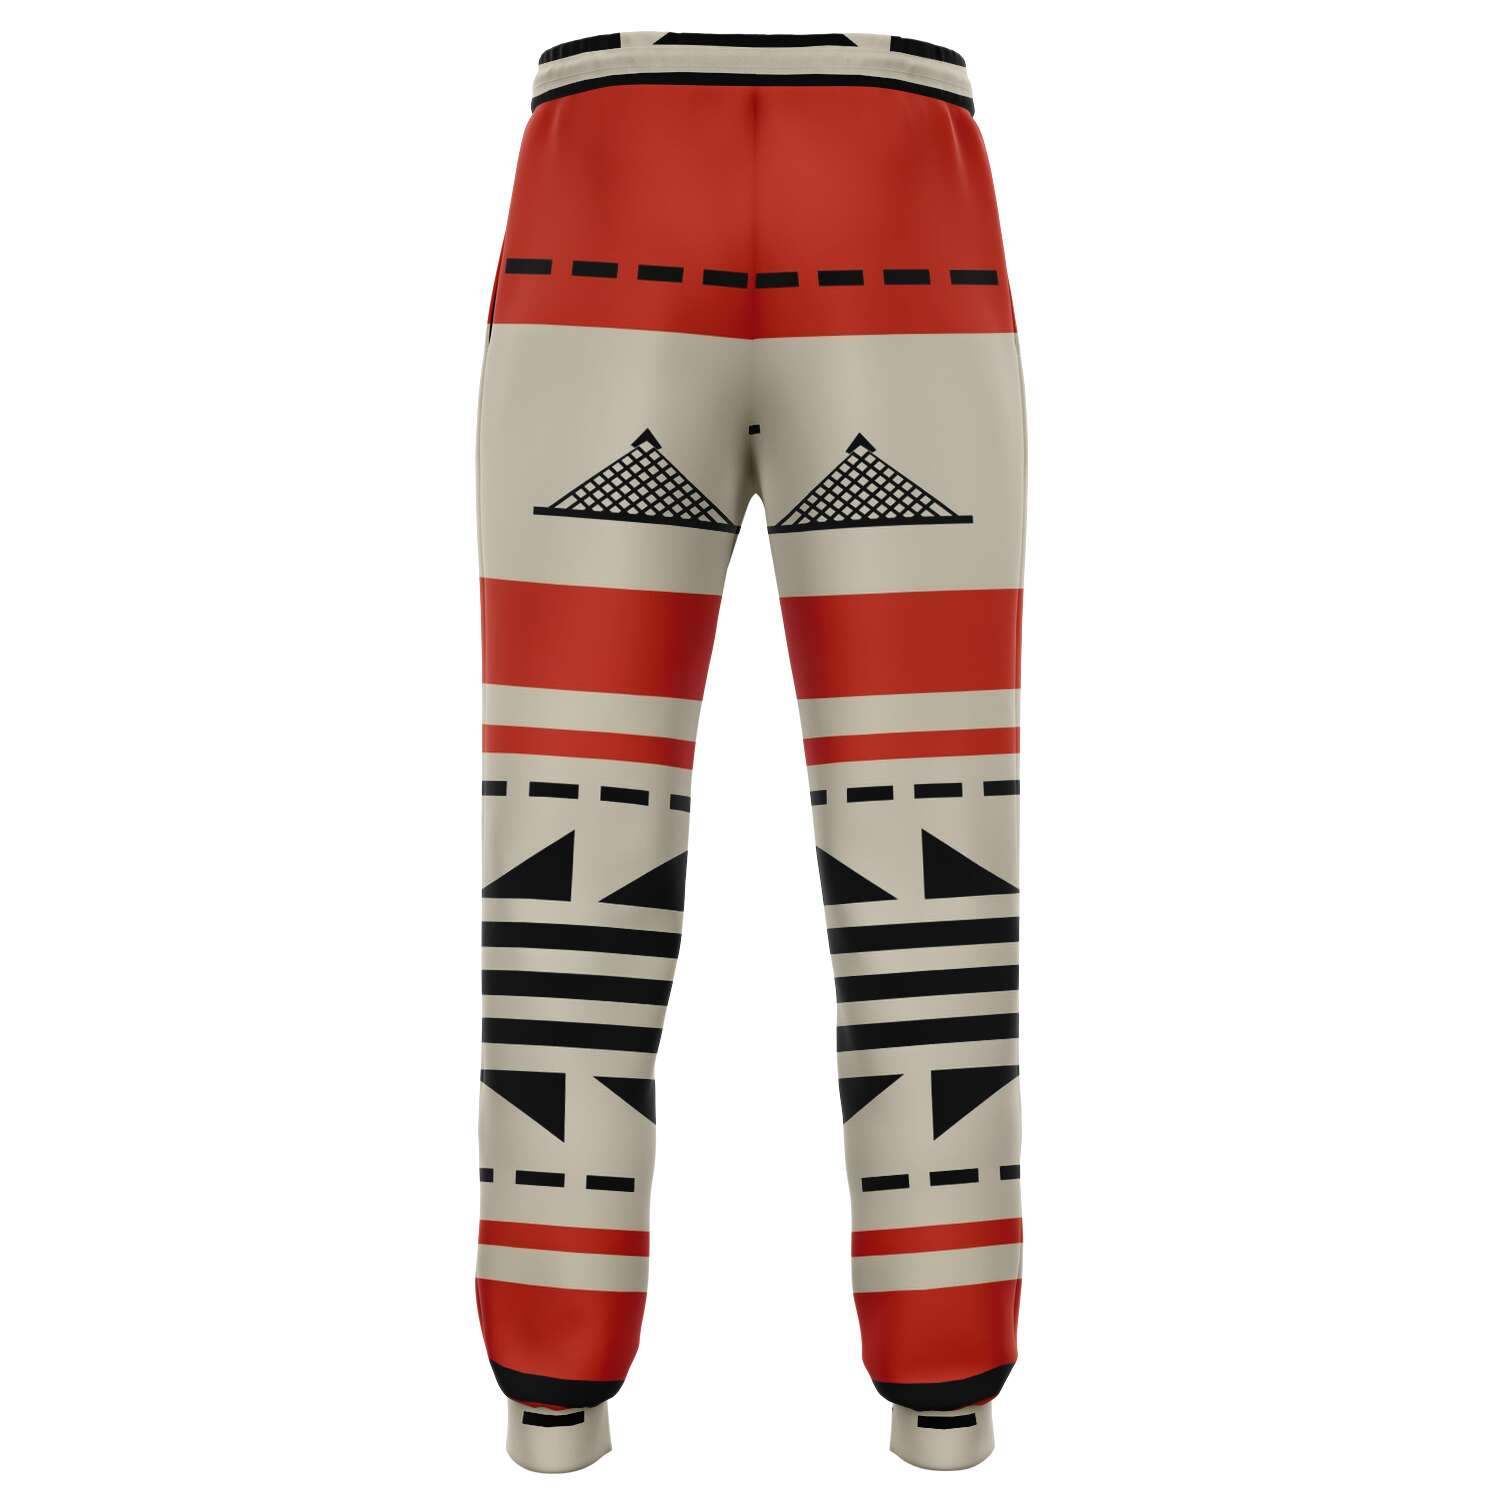 DDIIRO Fashion Sweatpants